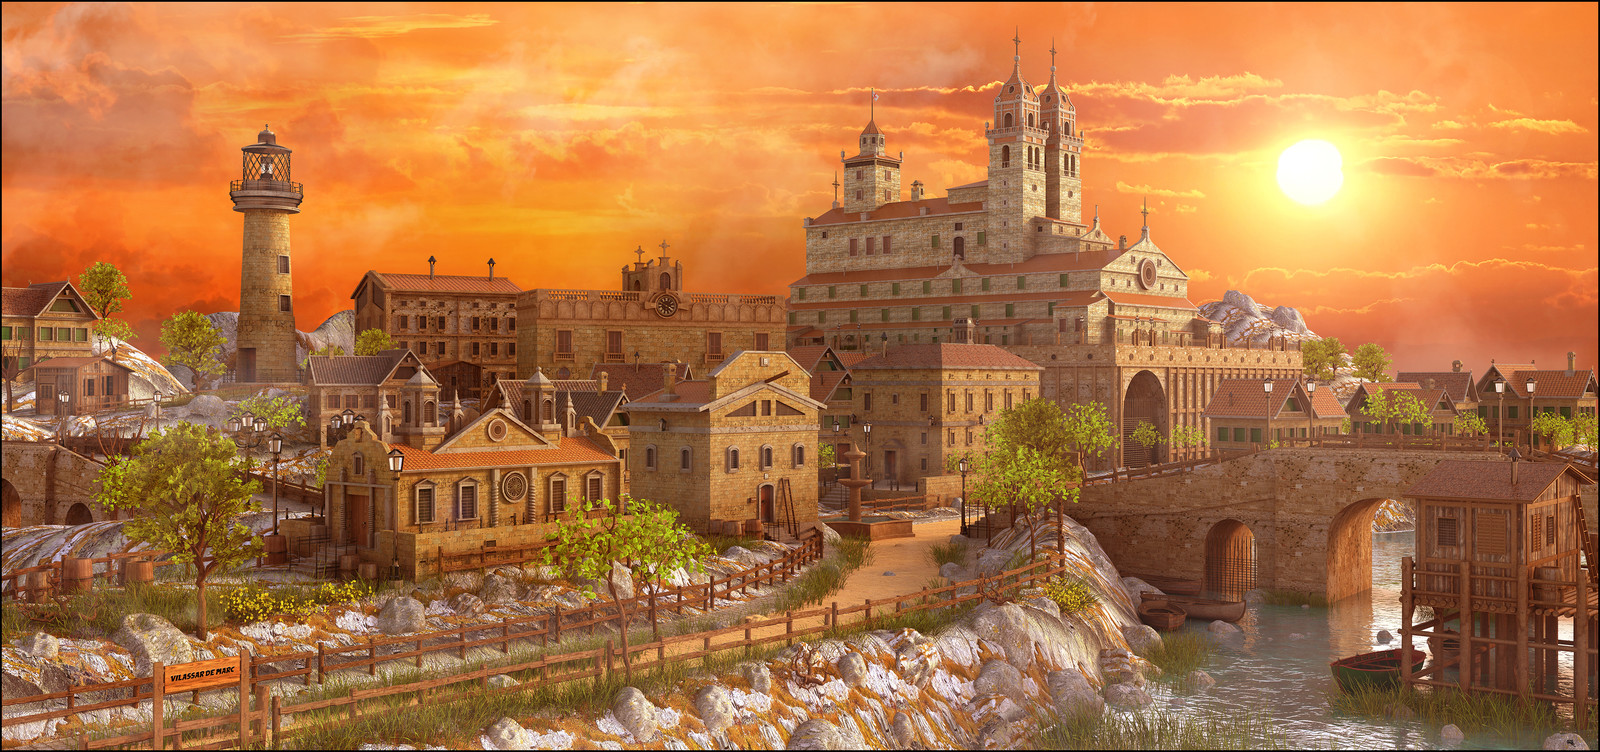 Sunset Medieval Environment